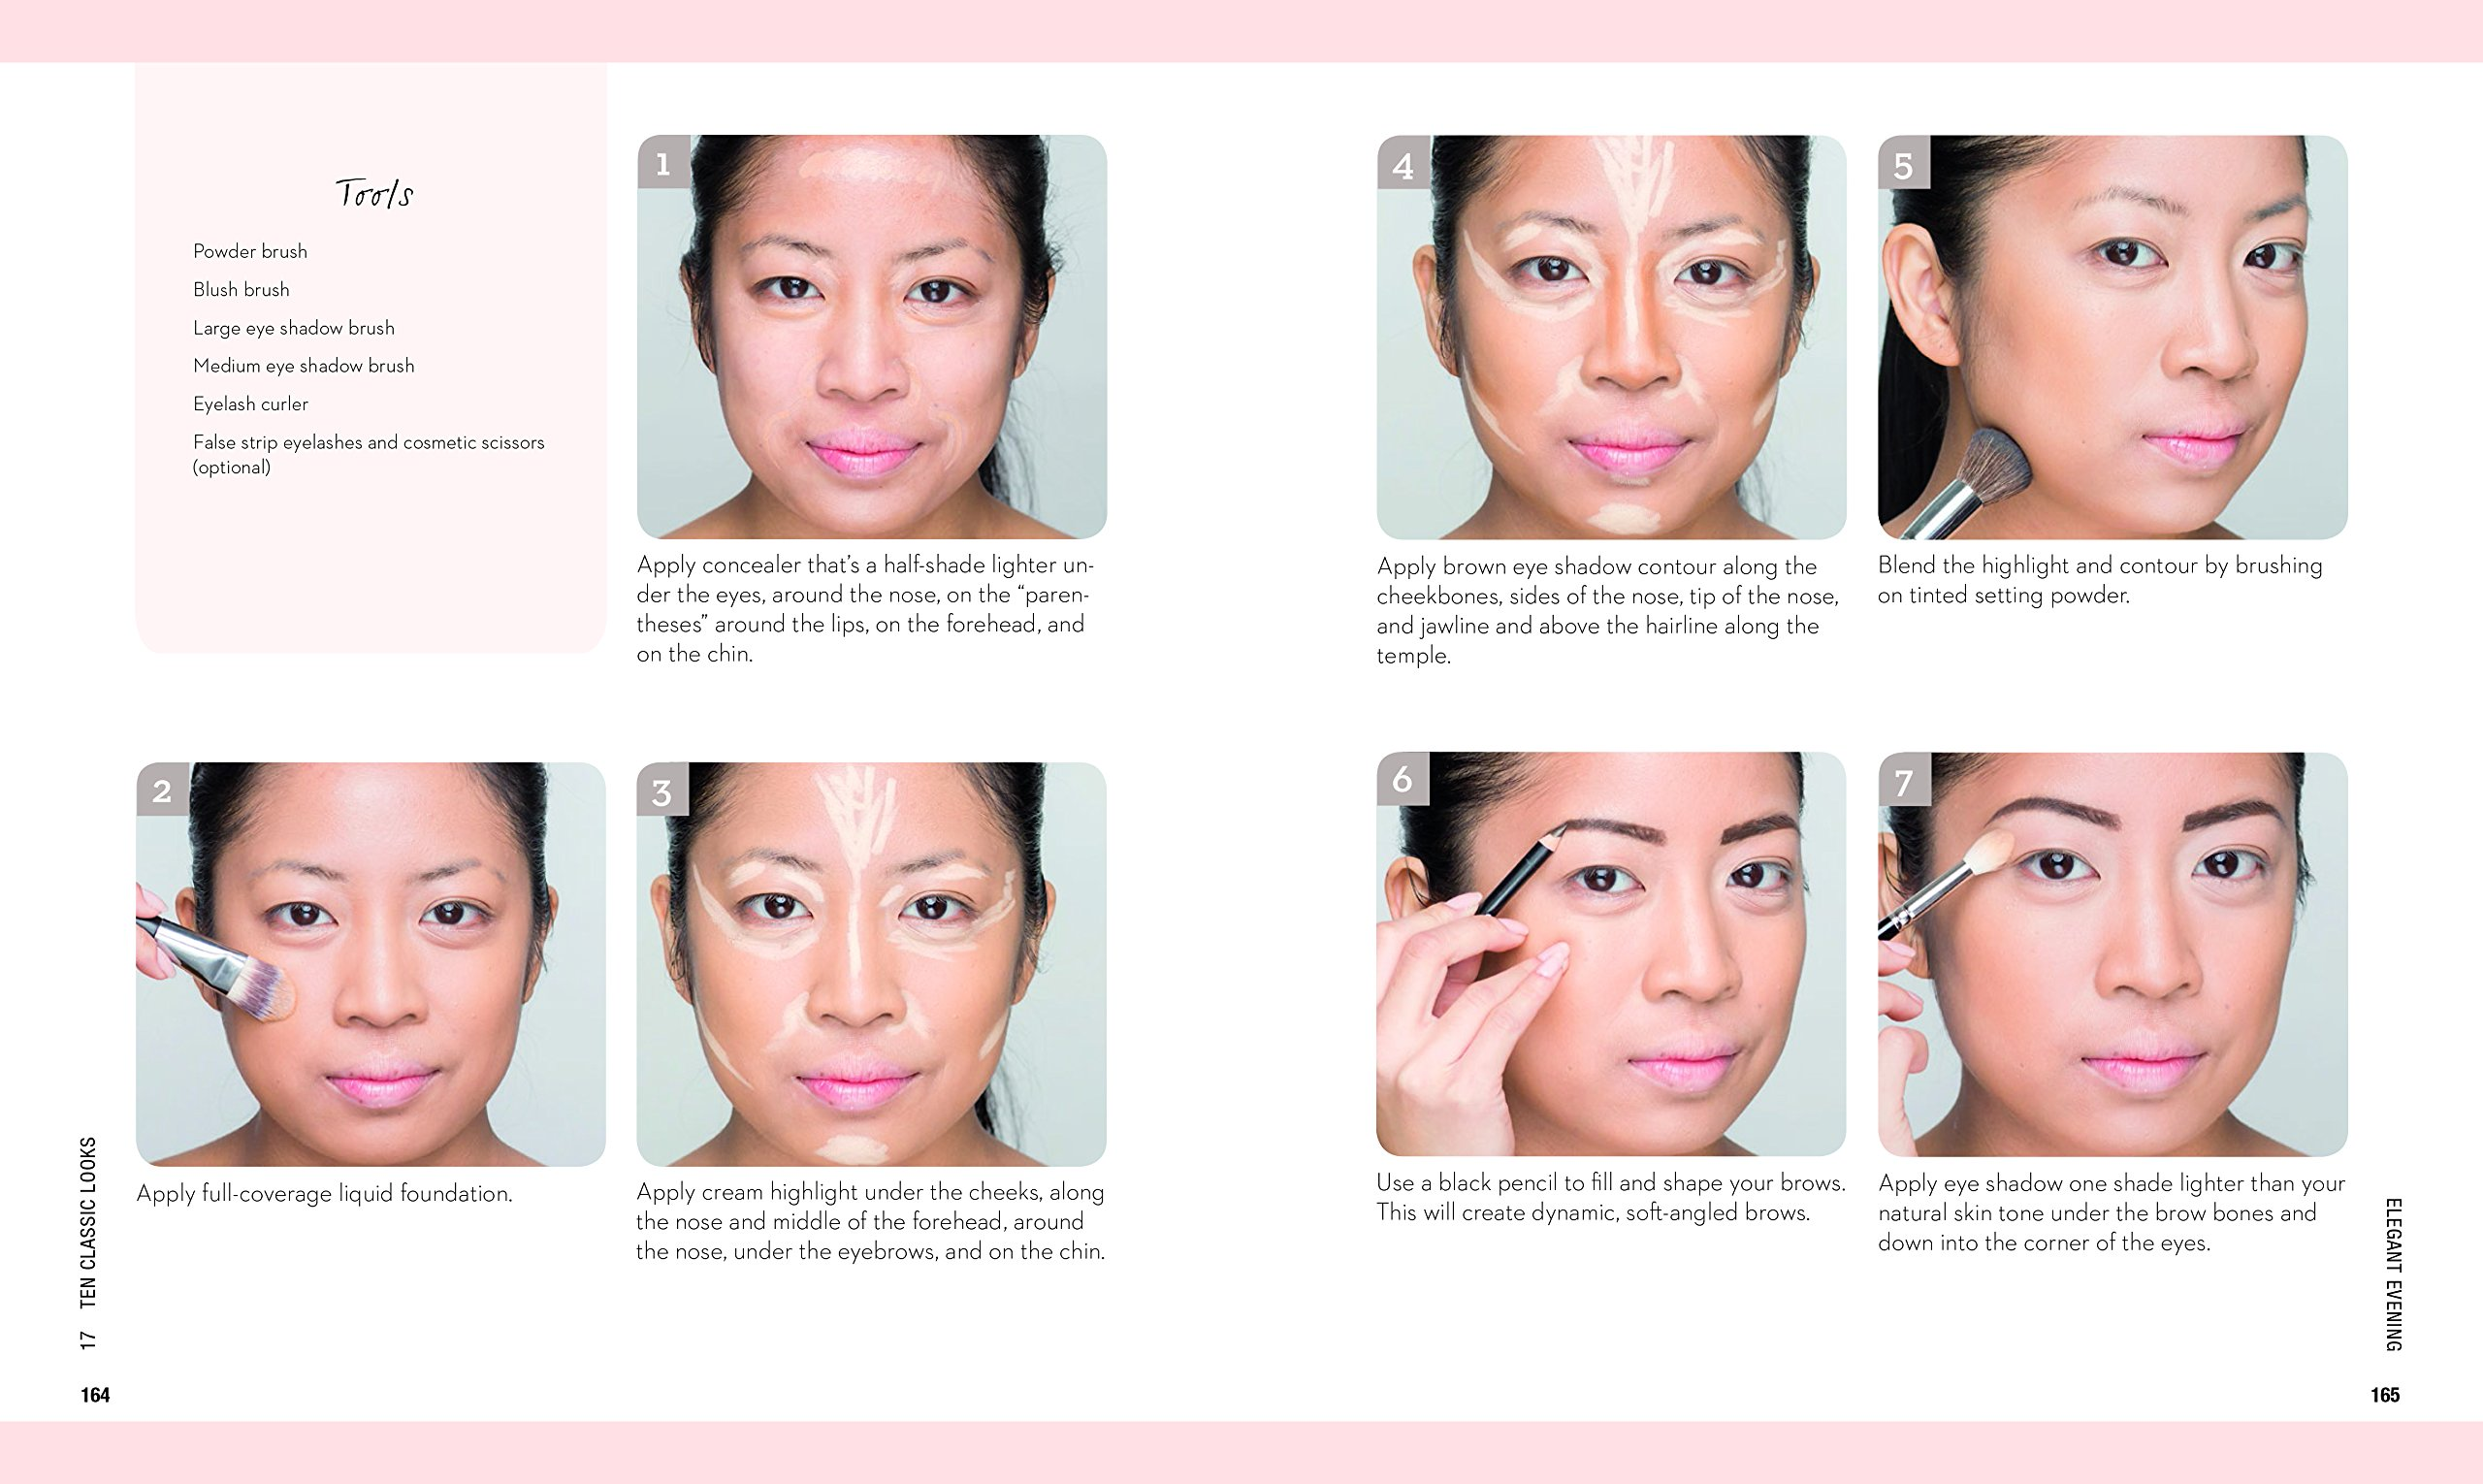 Everyday Makeup Secrets: Tips for Choosing the Best Makeup for Your